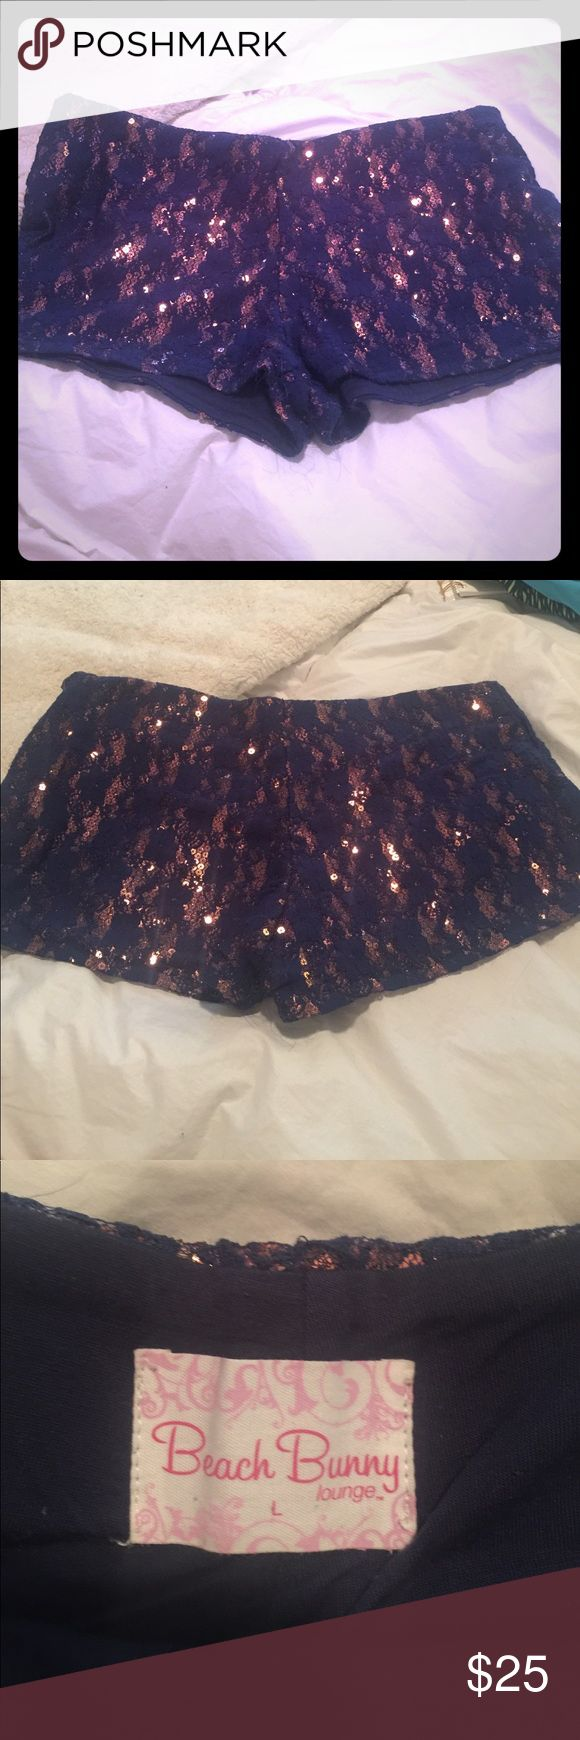 Beach Bunny Sparkly shorts! Gently used. Cute navy blue and rose gold sparkly shorts. Washed once and some fringe started on bottom mid area but overall great shorts! Size Large which could fit a medium too. Beach Bunny Shorts